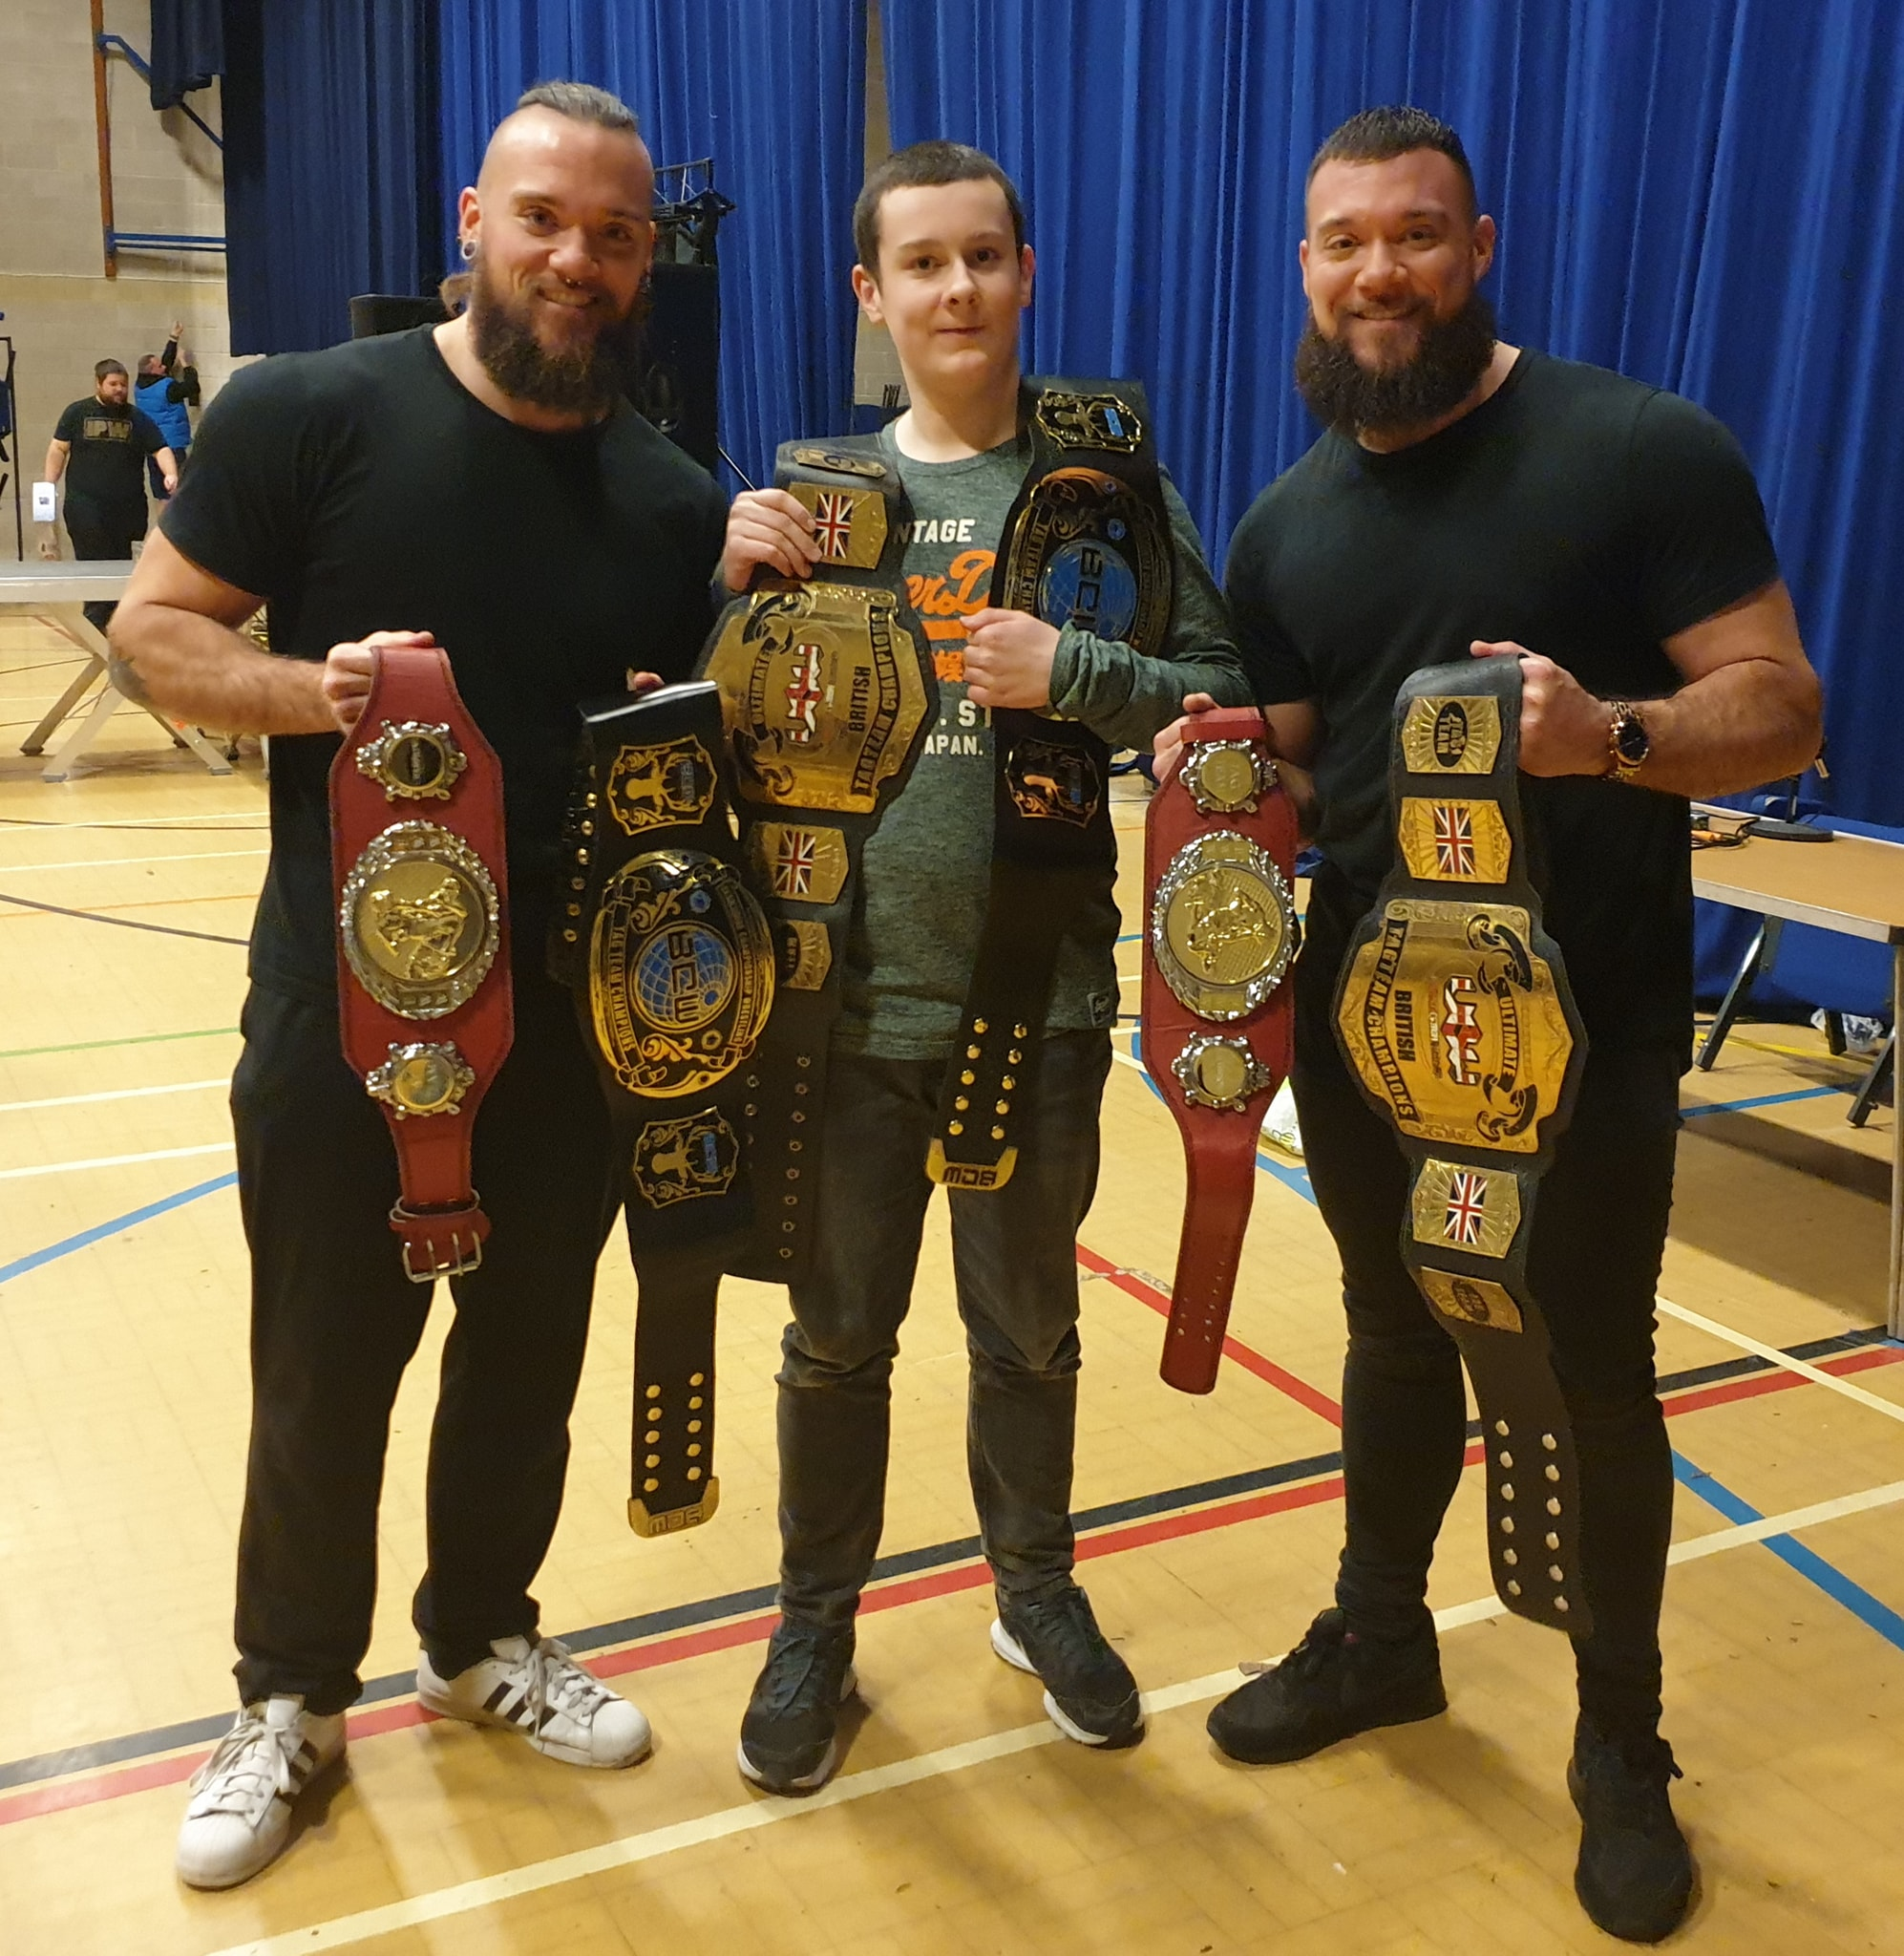 The Bone Brothers having picture taken with a fan and carrying 3 tag titles!